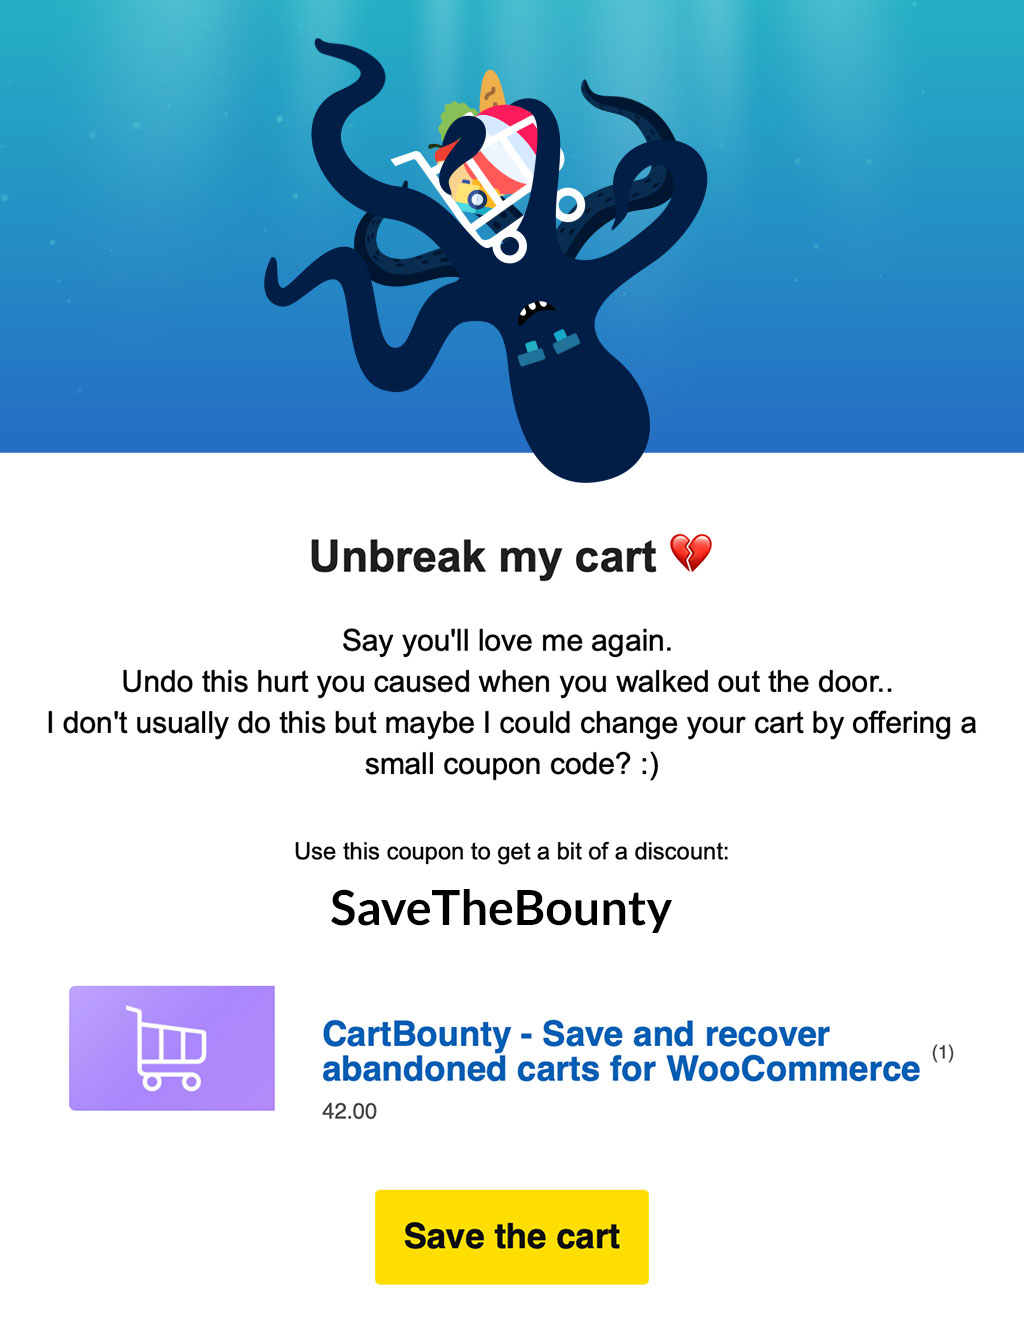 Last and 3rd abandoned cart email example from CartBounty featuring the final warning before the shopping cart is gone